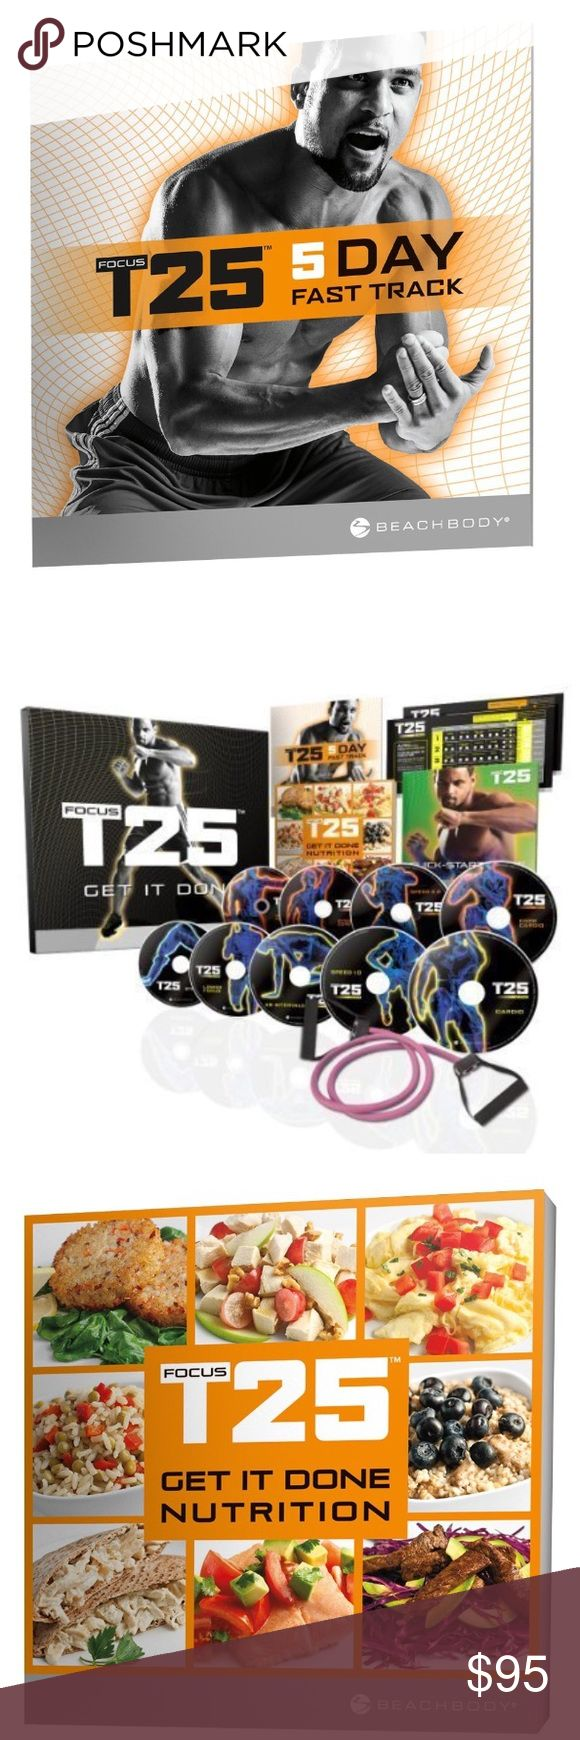 Beach Body FOCUS T25 Shaun T's Workout DVD Program NWT I Bought for myself but had surgery during this time and was told to not exercise by my doctor 😕. So it's still new in the box!!📦 Workout DVD Program—Get It Done in 25 MinutesFeatures T25. Includes 11 nonstop 25-minute workouts on 9 DVDs, Quick-Start Guide, Nutrition Plan, Workout Calendars, B-LINES Resistance Band (15 lb.), and 5-Day Fast Track Guide (located inside shrink wrap)Major studies show that 30 mins of exercise is as…